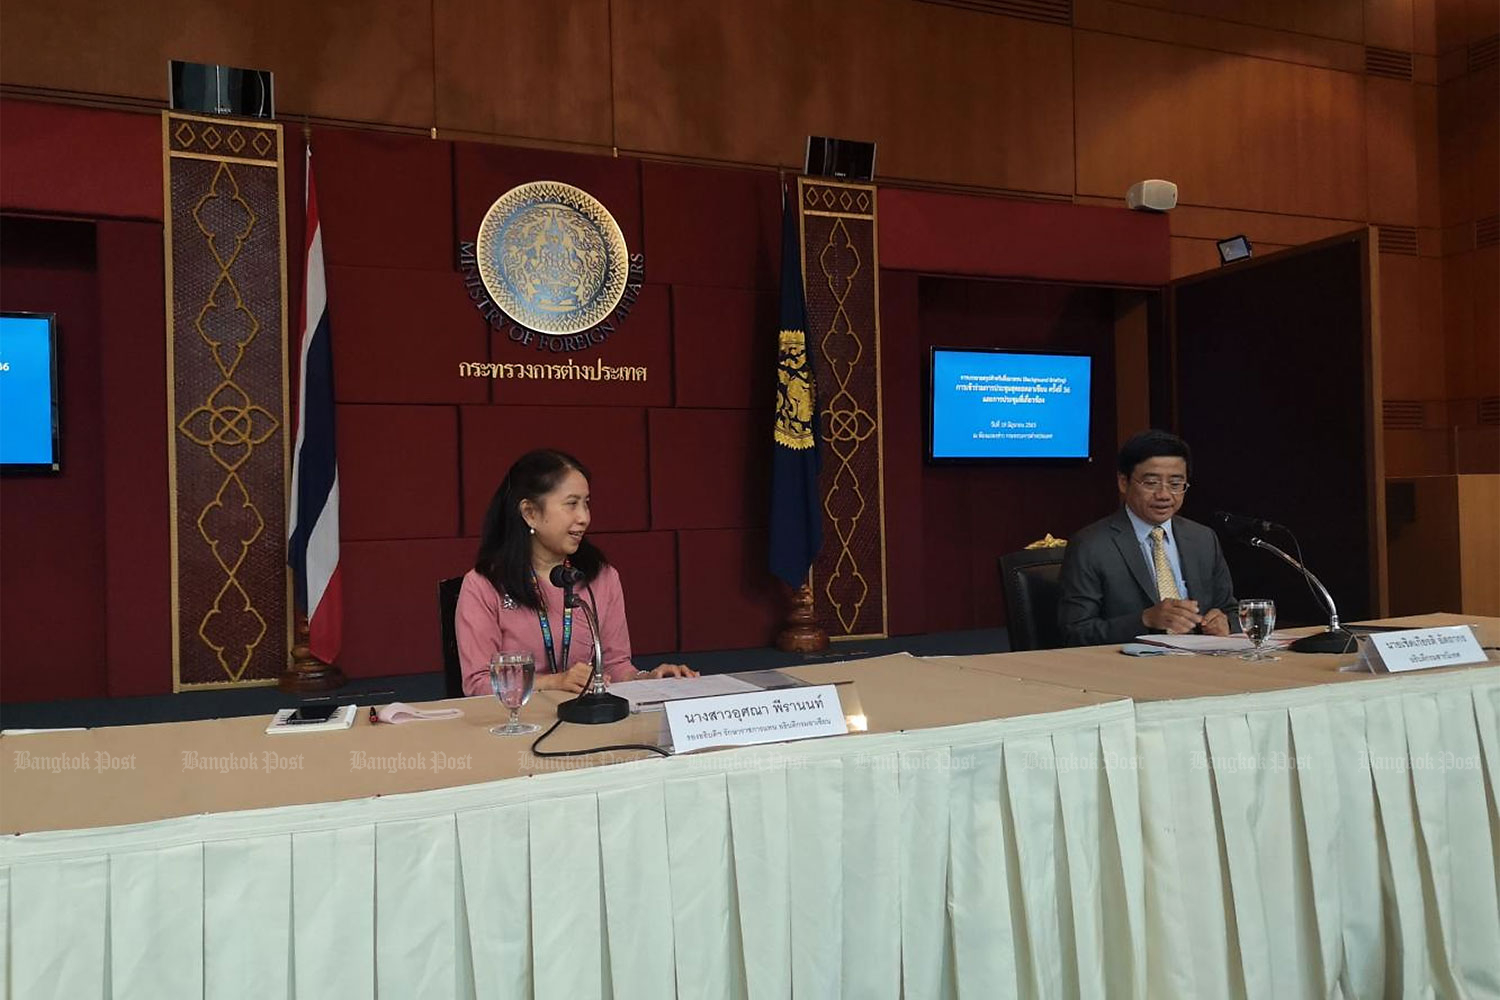 Usana Berananda, Department of Asean Affairs' acting director-general, left, and Cherdkiat Atthakor, Ministry of Foreign Affairs' spokesman hold a press conference on the upcoming Asean Summit.(Photo by Kornchanok Raksaseri)